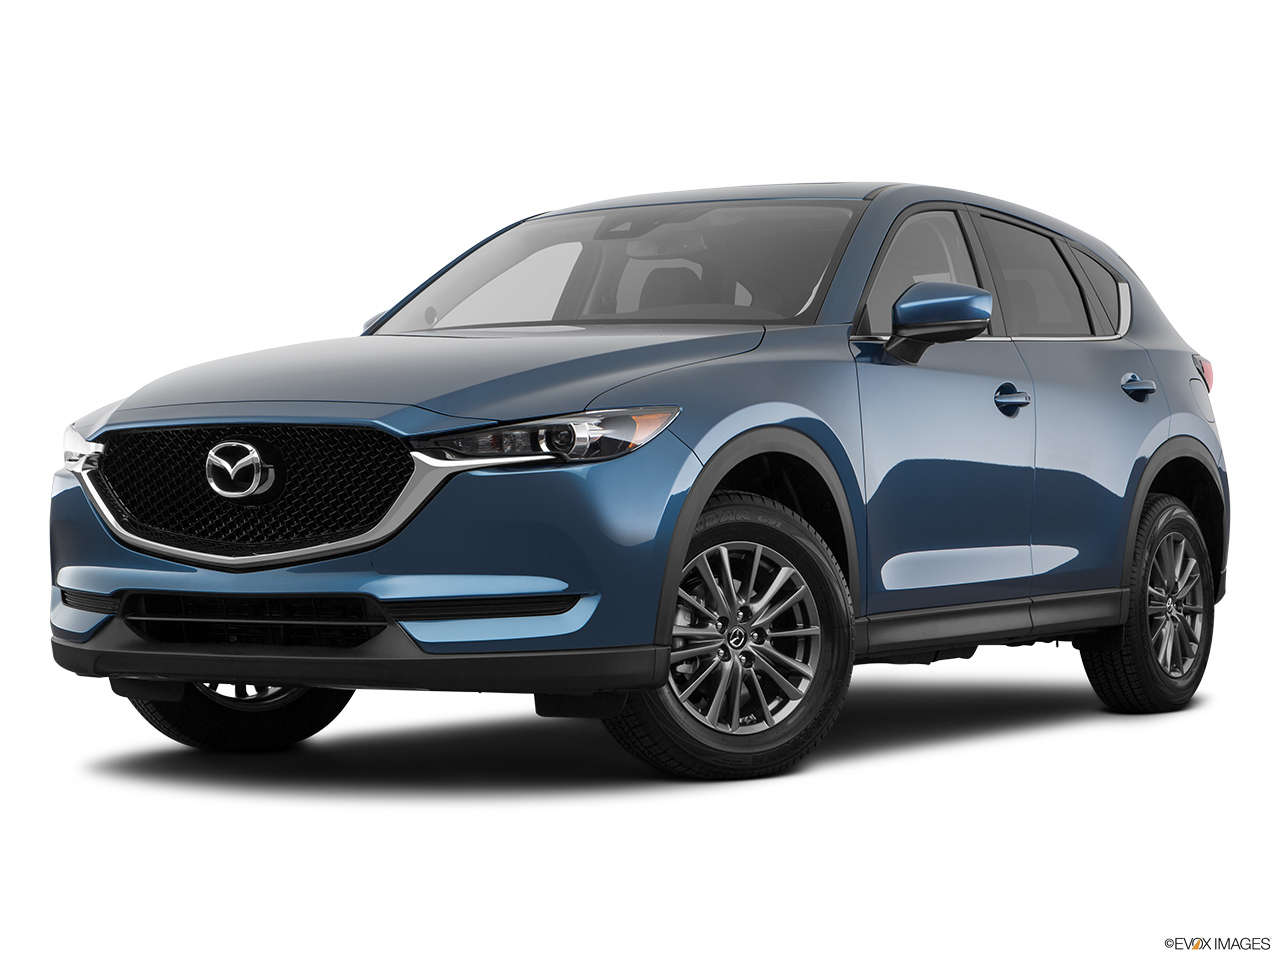 Lease A 2018 Mazda Cx 5 Gx Manual 2wd In Canada Canada